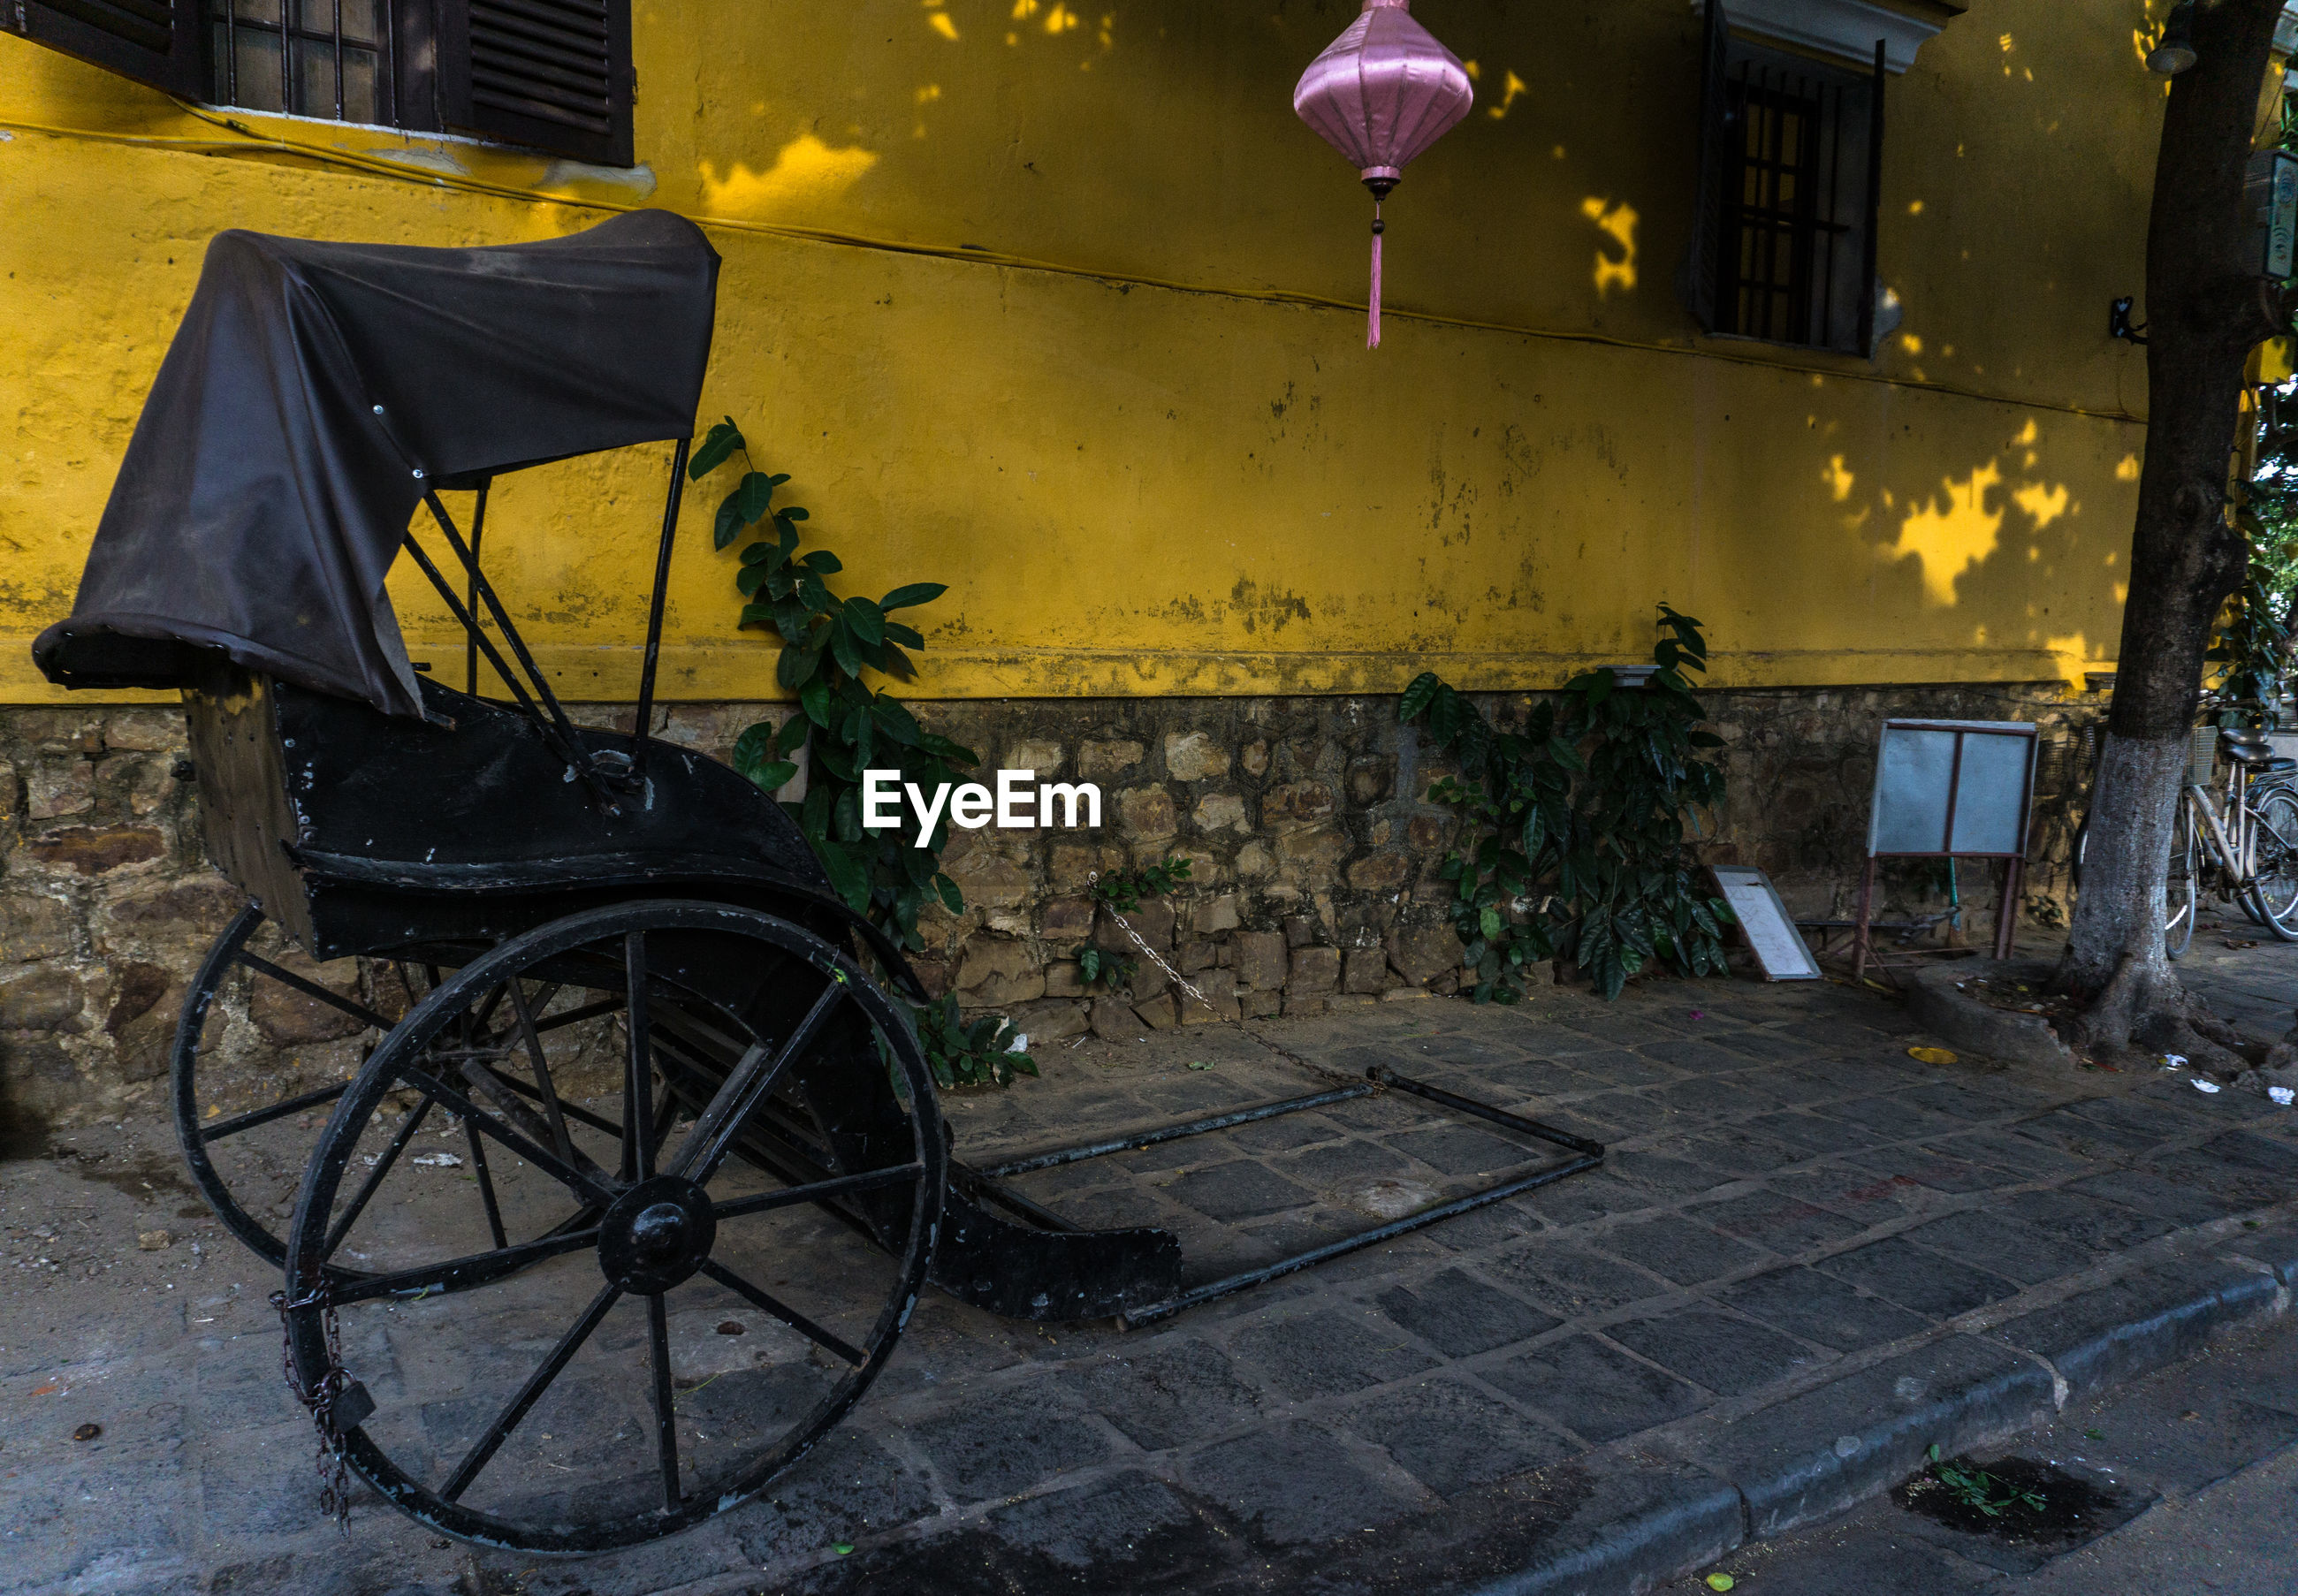 Old pedicab parked on footpath by building